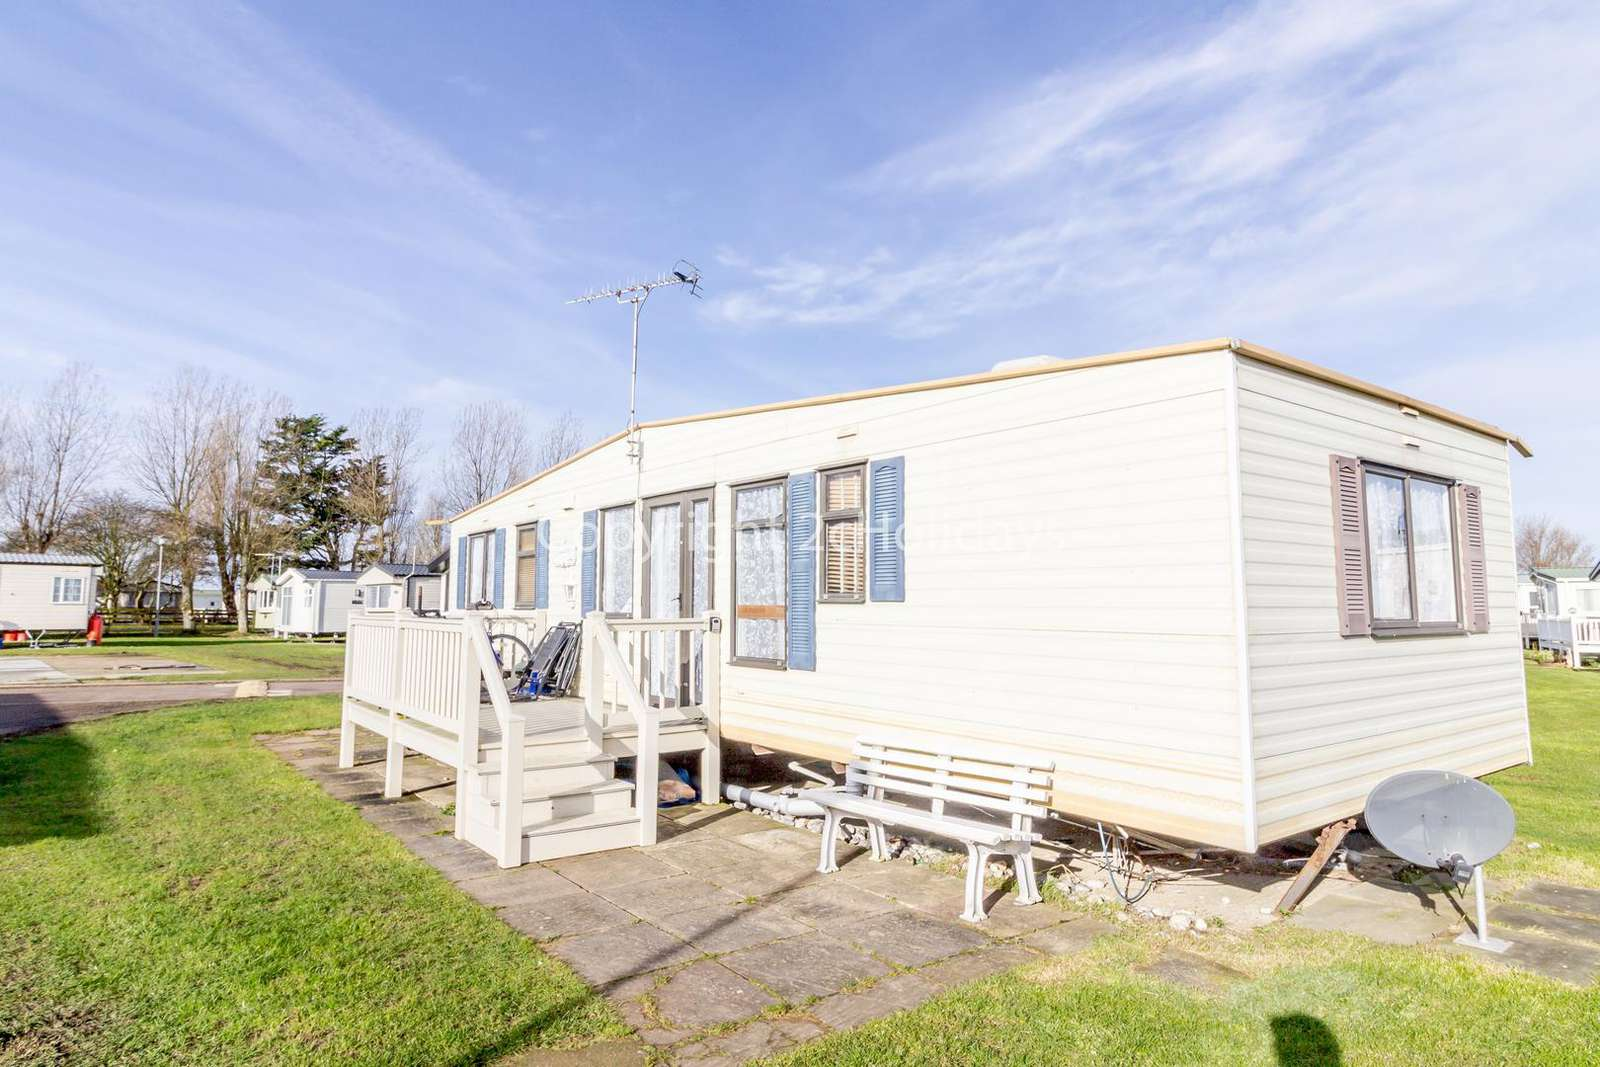 Stunning caravan located on a quieter area of the park!